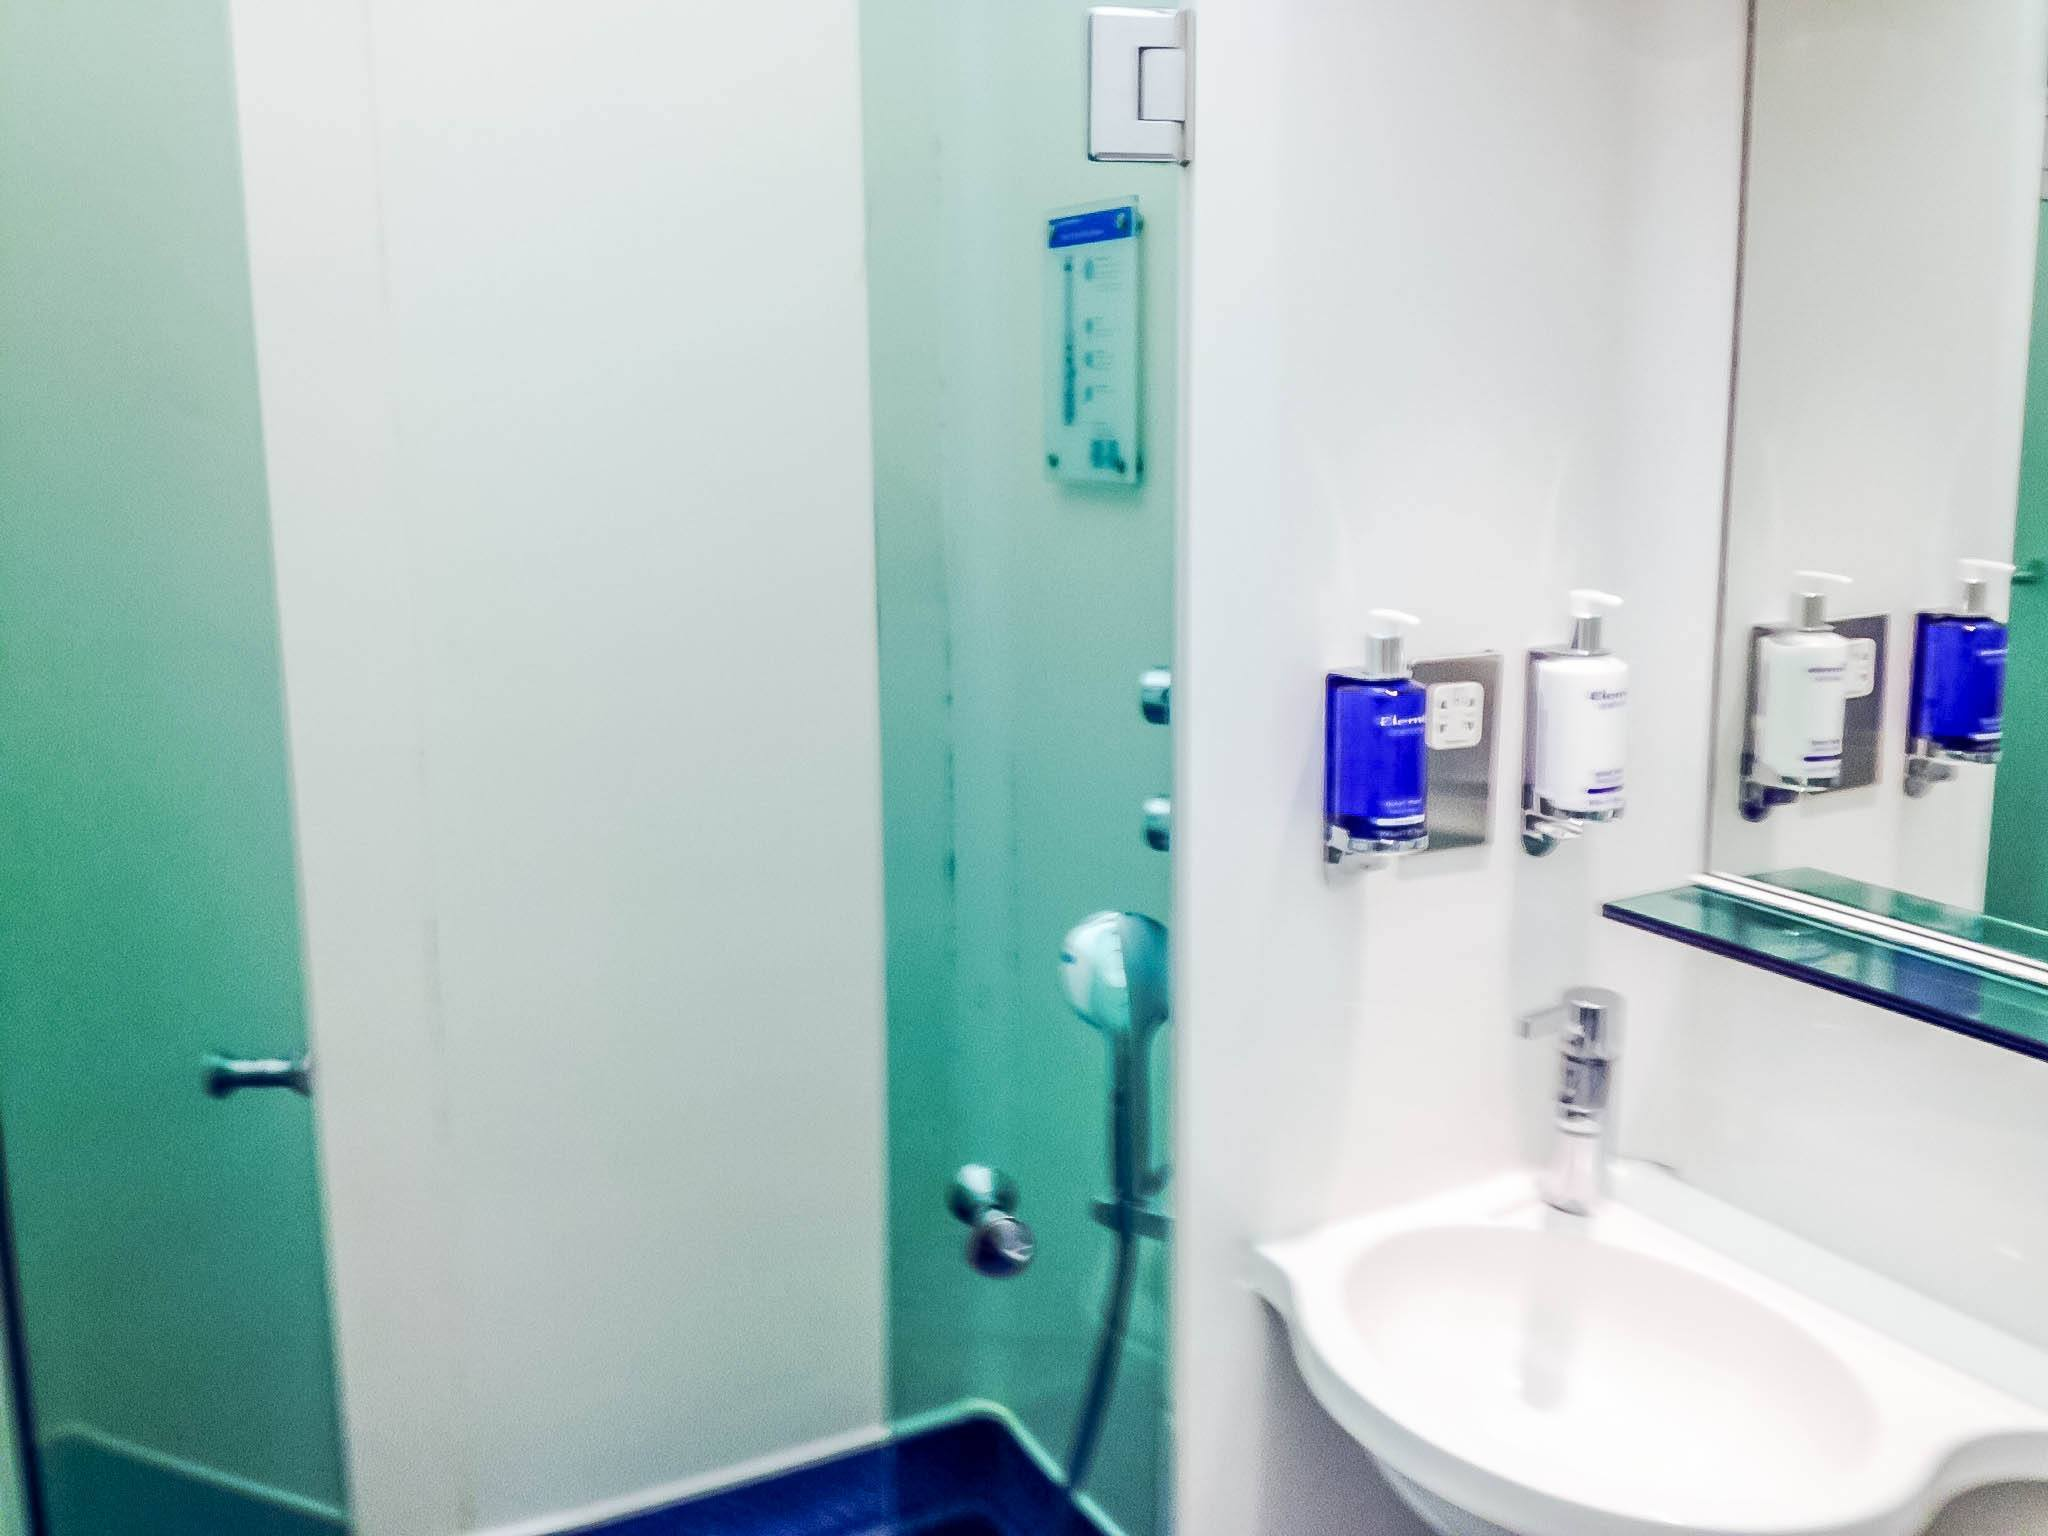 The shower cabinet in the British Airways lounge.  These BA Lounge Heathrow Terminal 5 Showers are basic, but clean and convenient making them our favorite Heathrow airport shower.